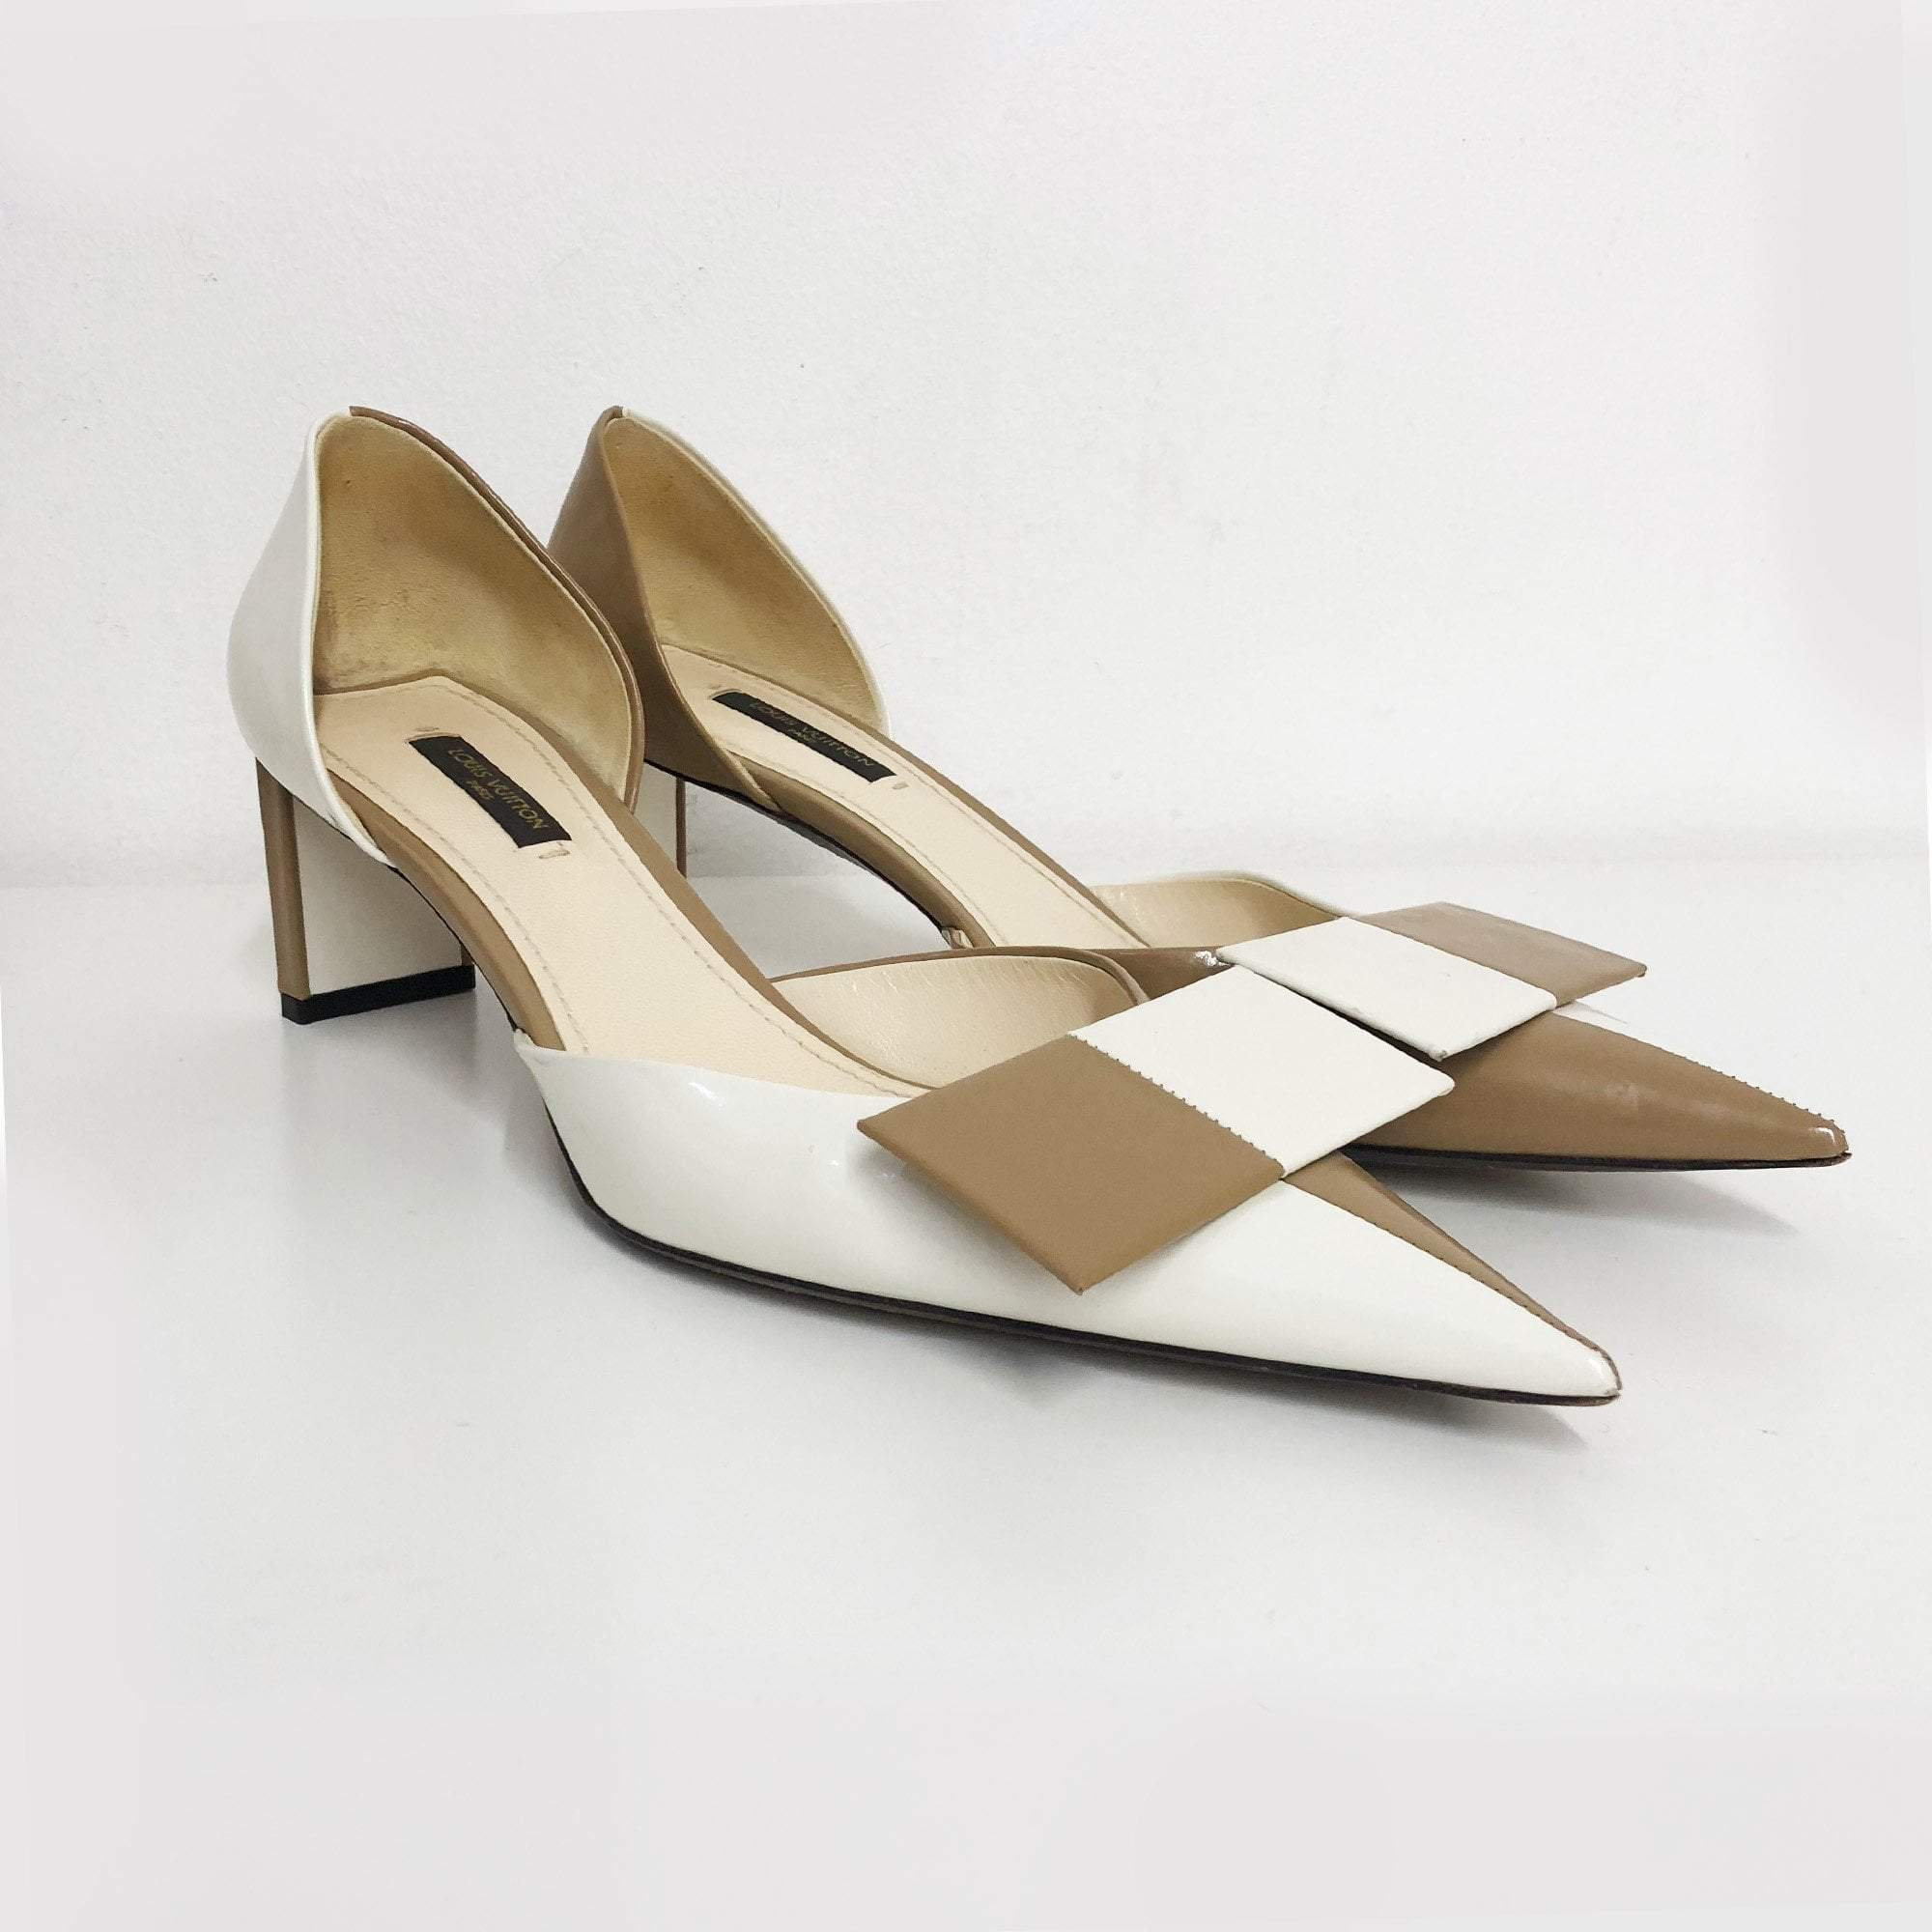 Louis Vuitton Bicolor Pointed-Toe D'orsay Pumps